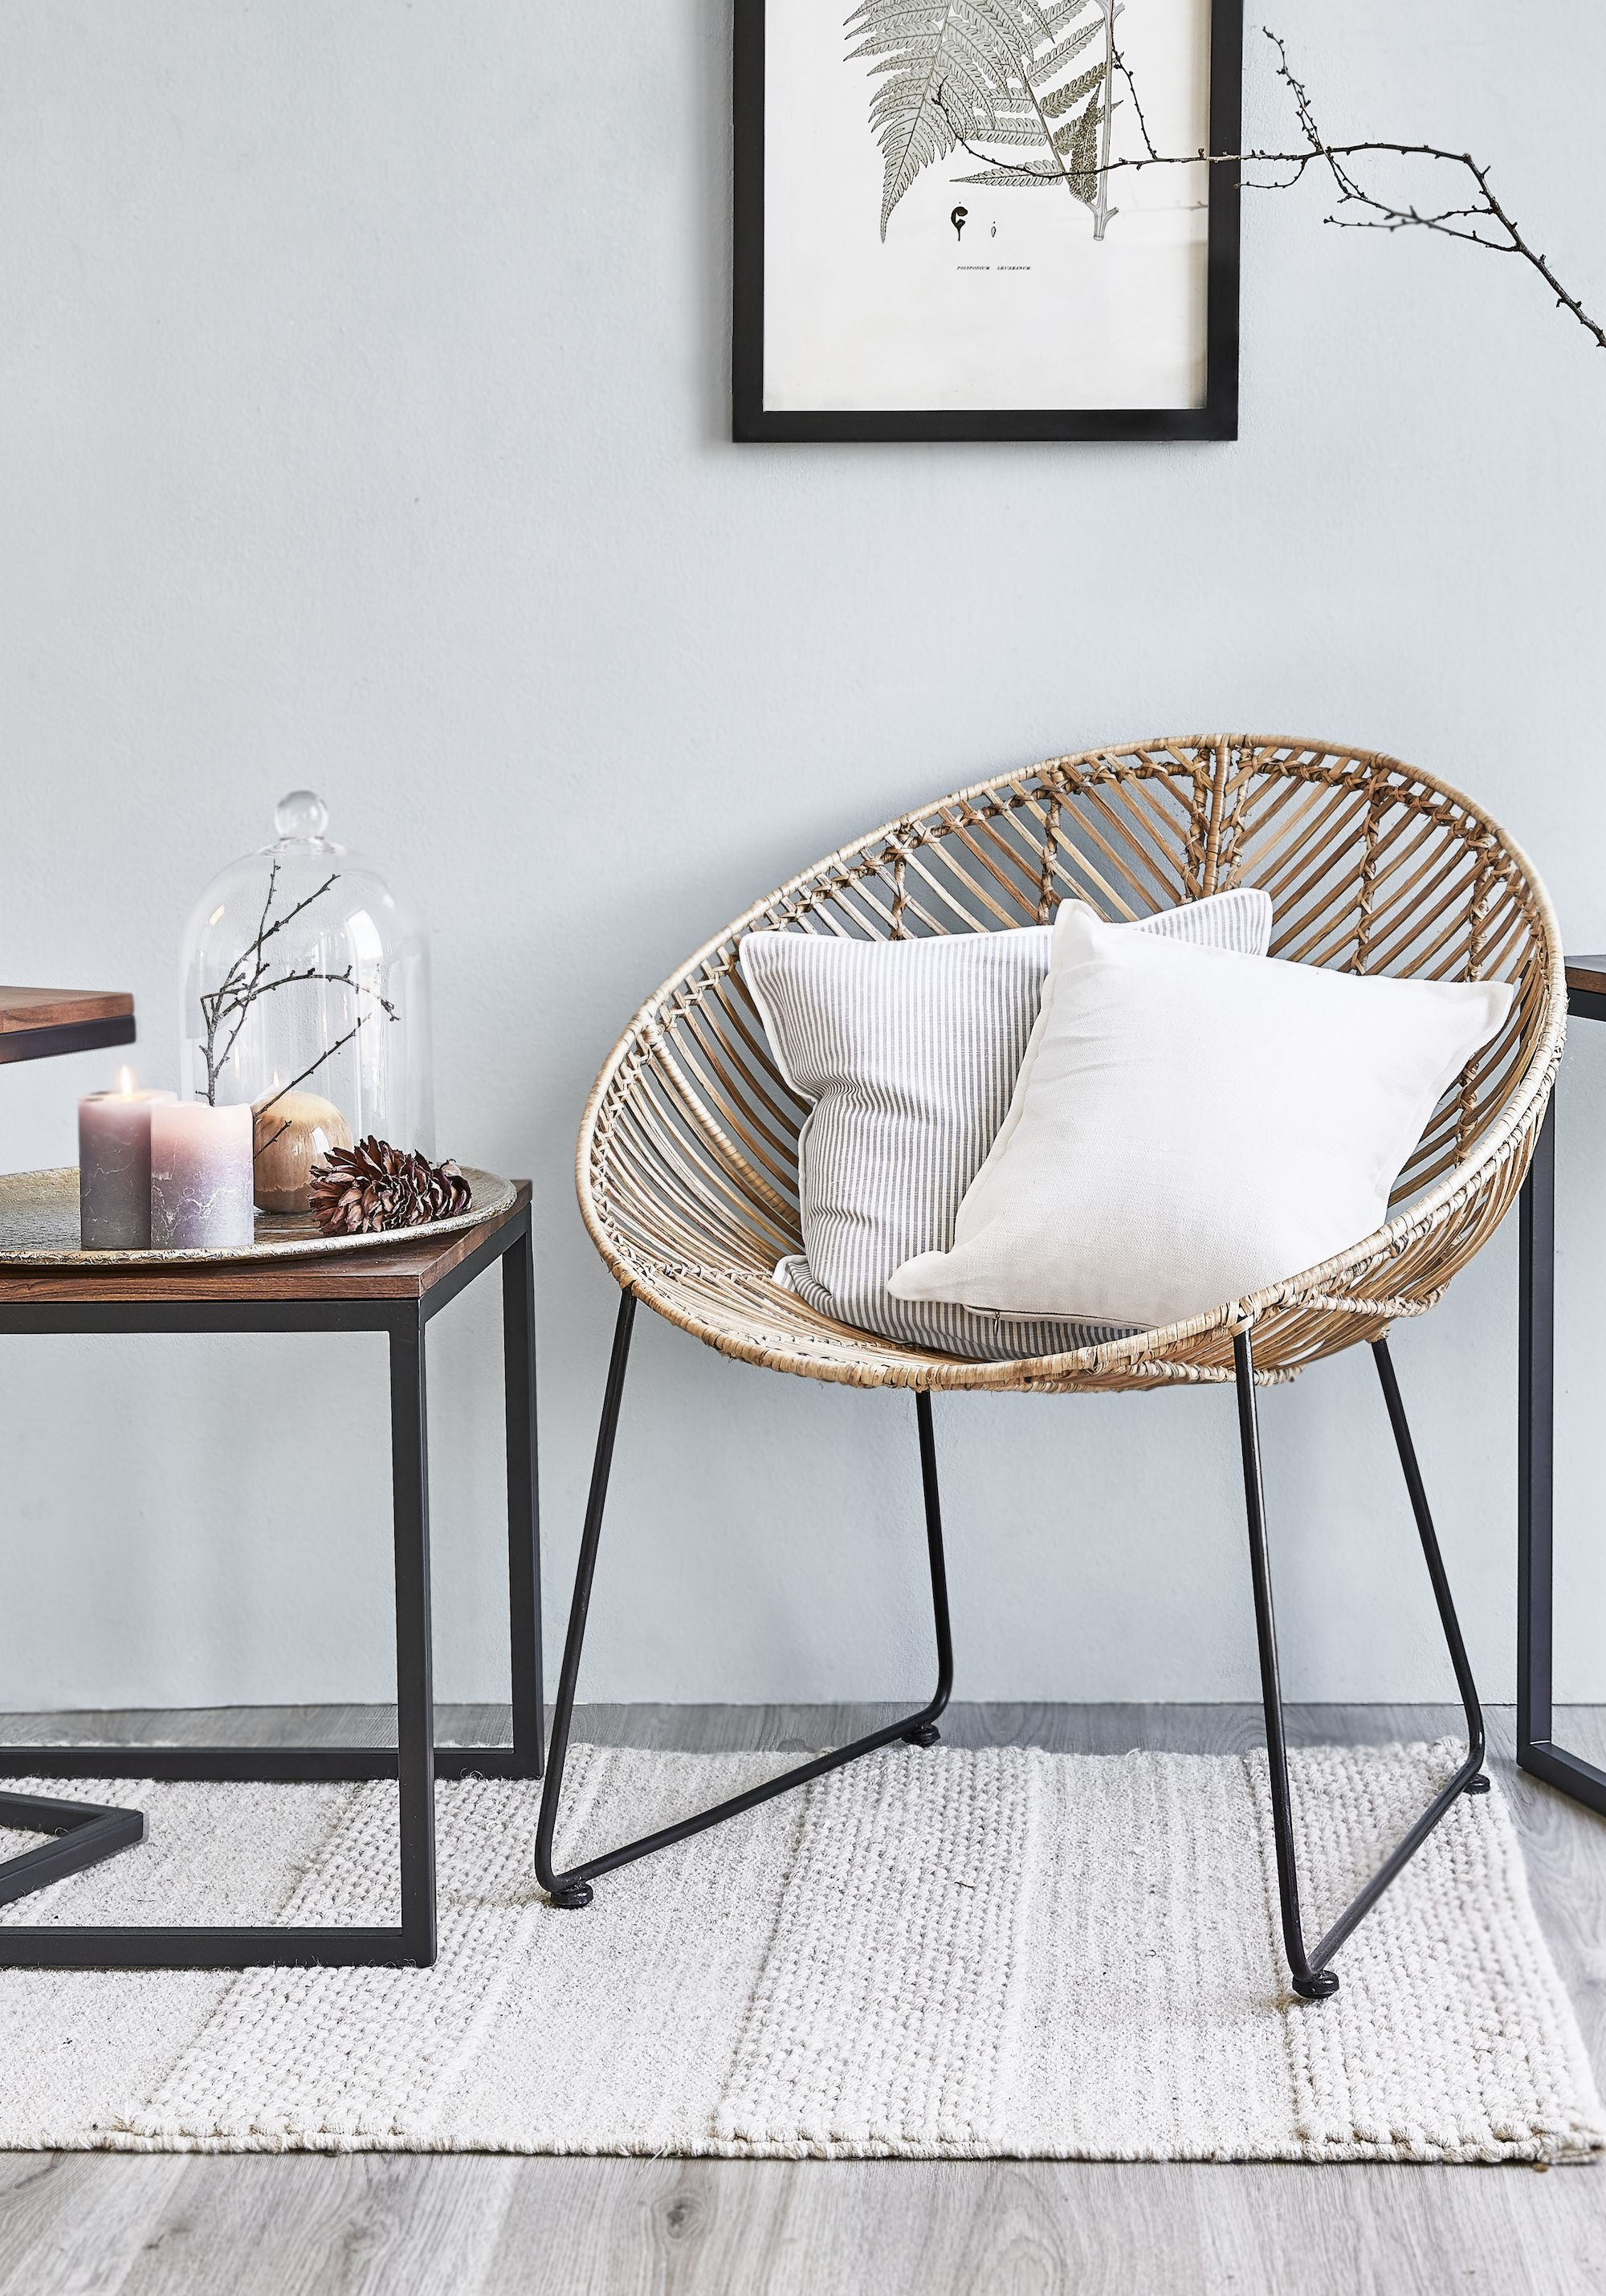 Skull Sessel Rattan Sessel Cocon Grey Pinterest Chair Rattan And Interior